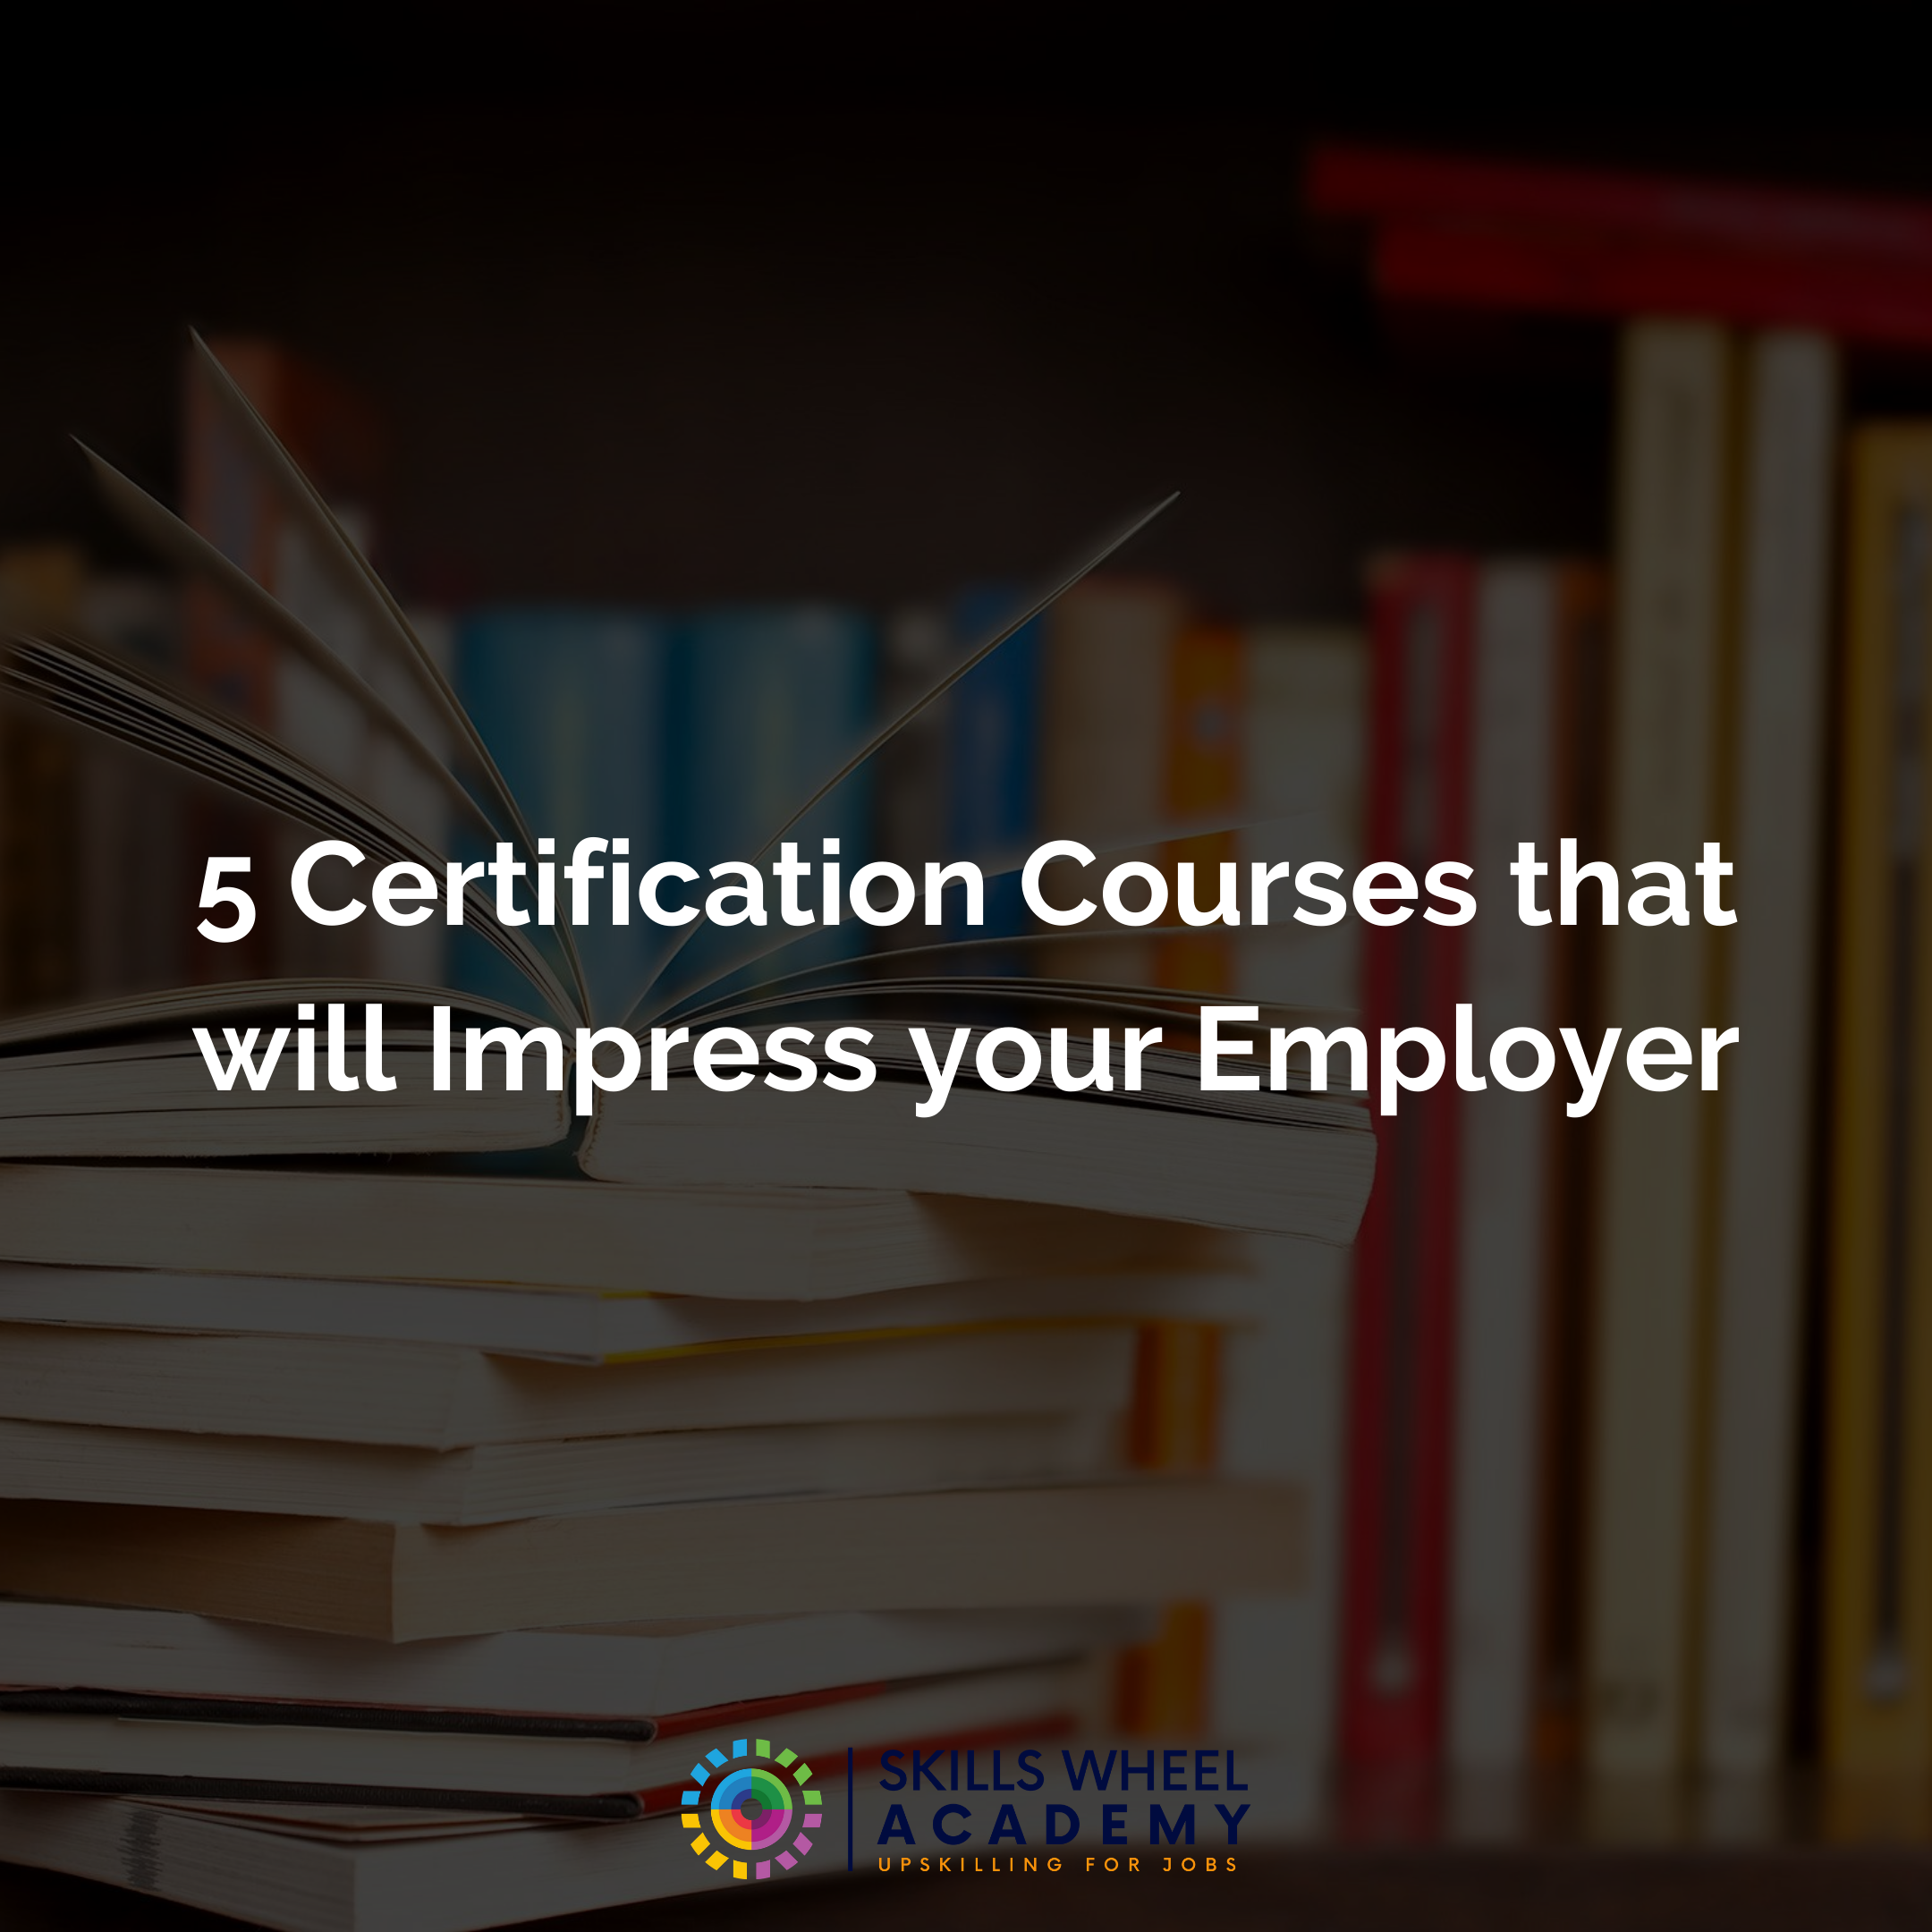 5 Certification Courses That Will Impress Your Employer